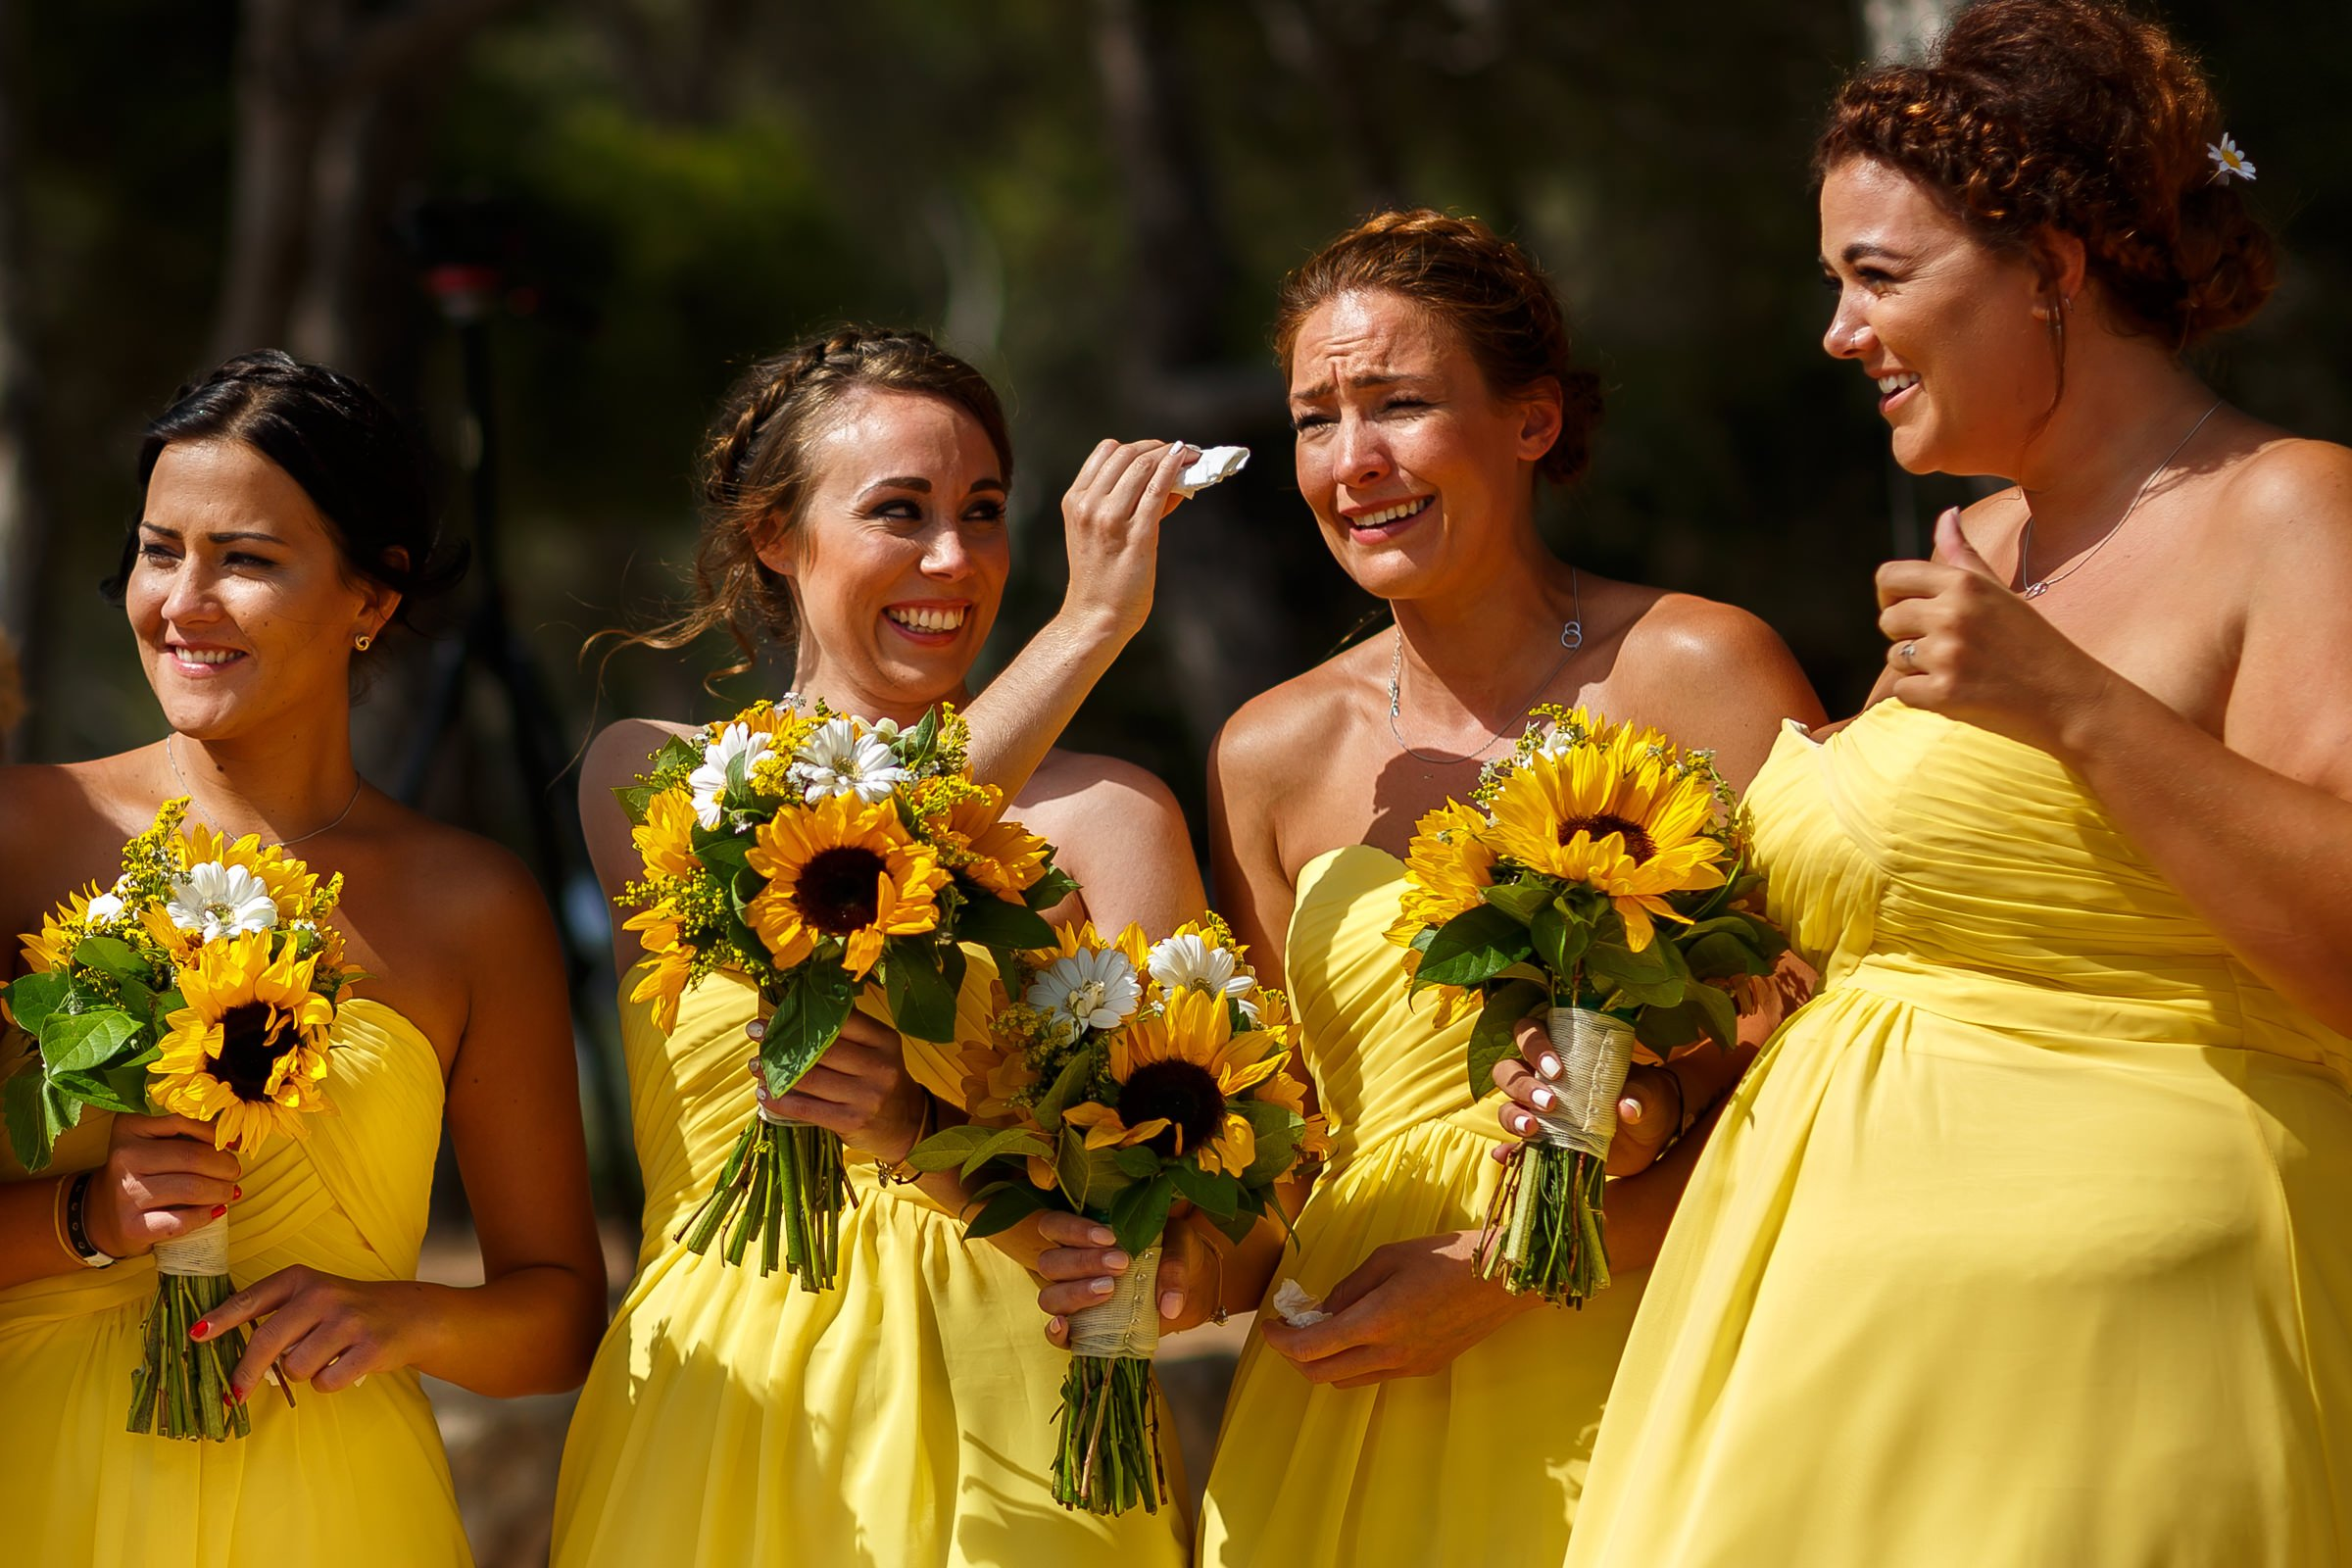 Natural photo of bridesmaids crying at wedding